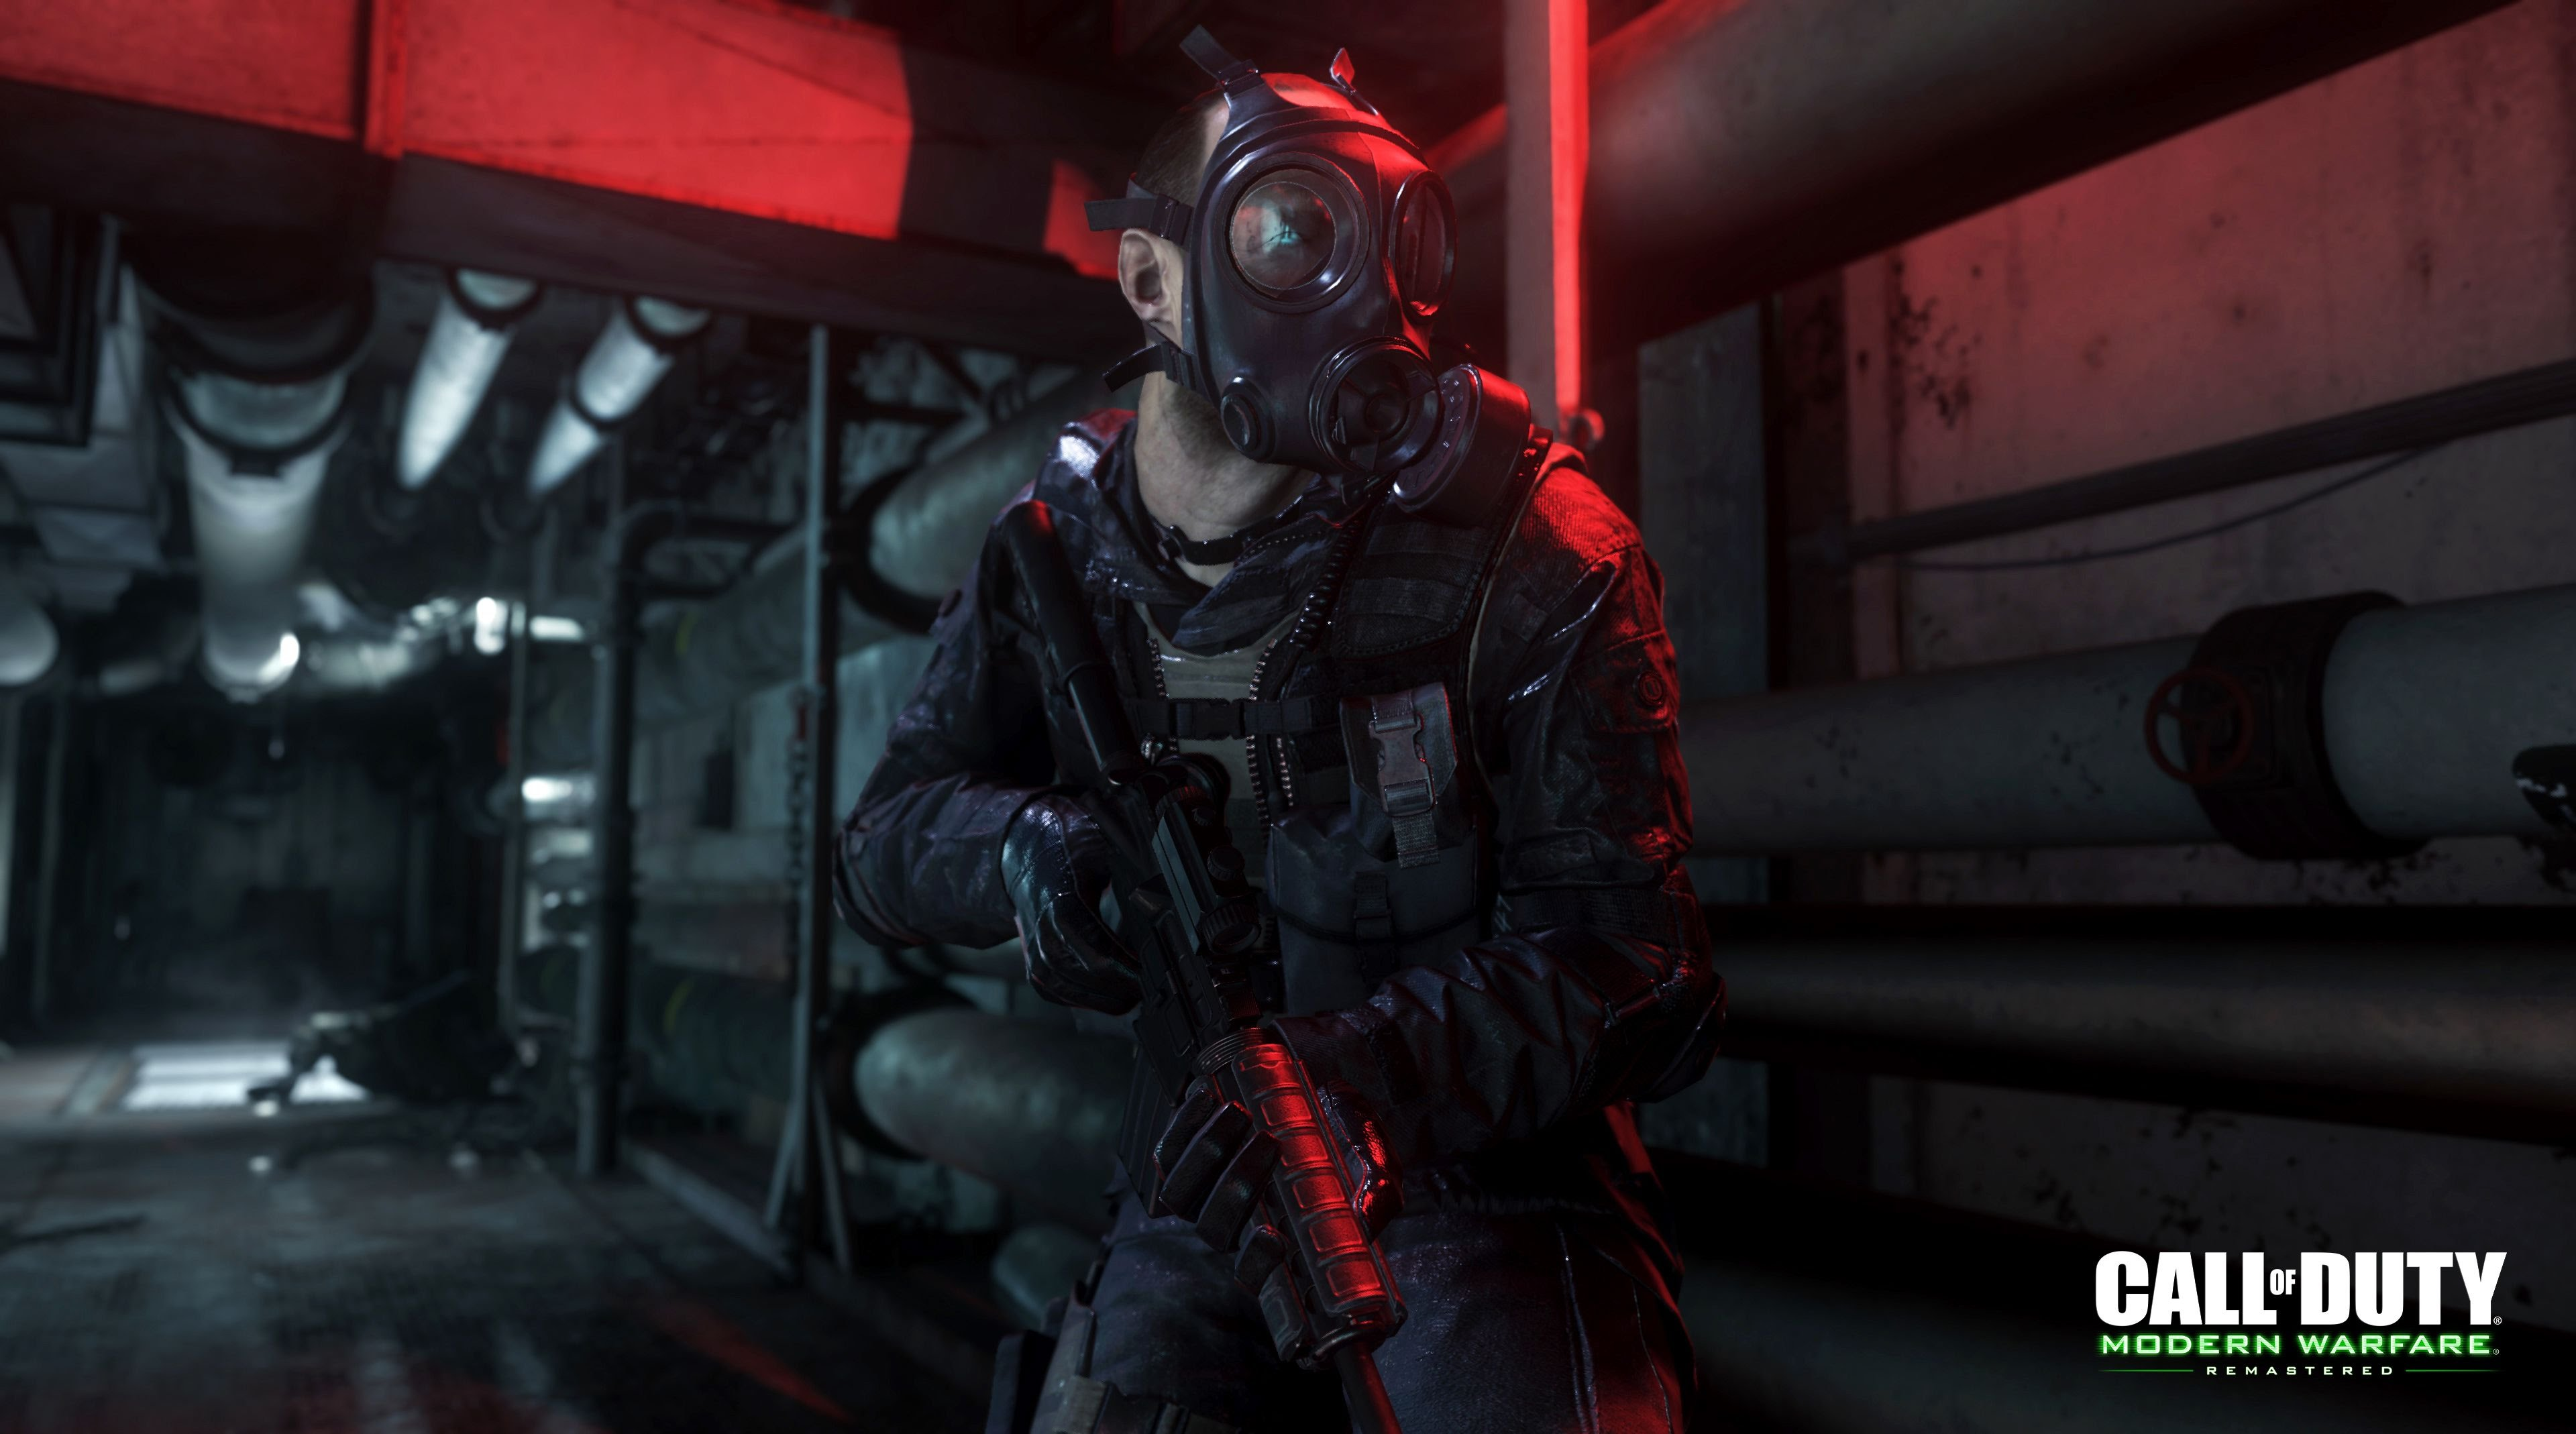 maxresdefault 2 8 Call of Duty 4 Dev Reveals Advice To Activision Over Remake